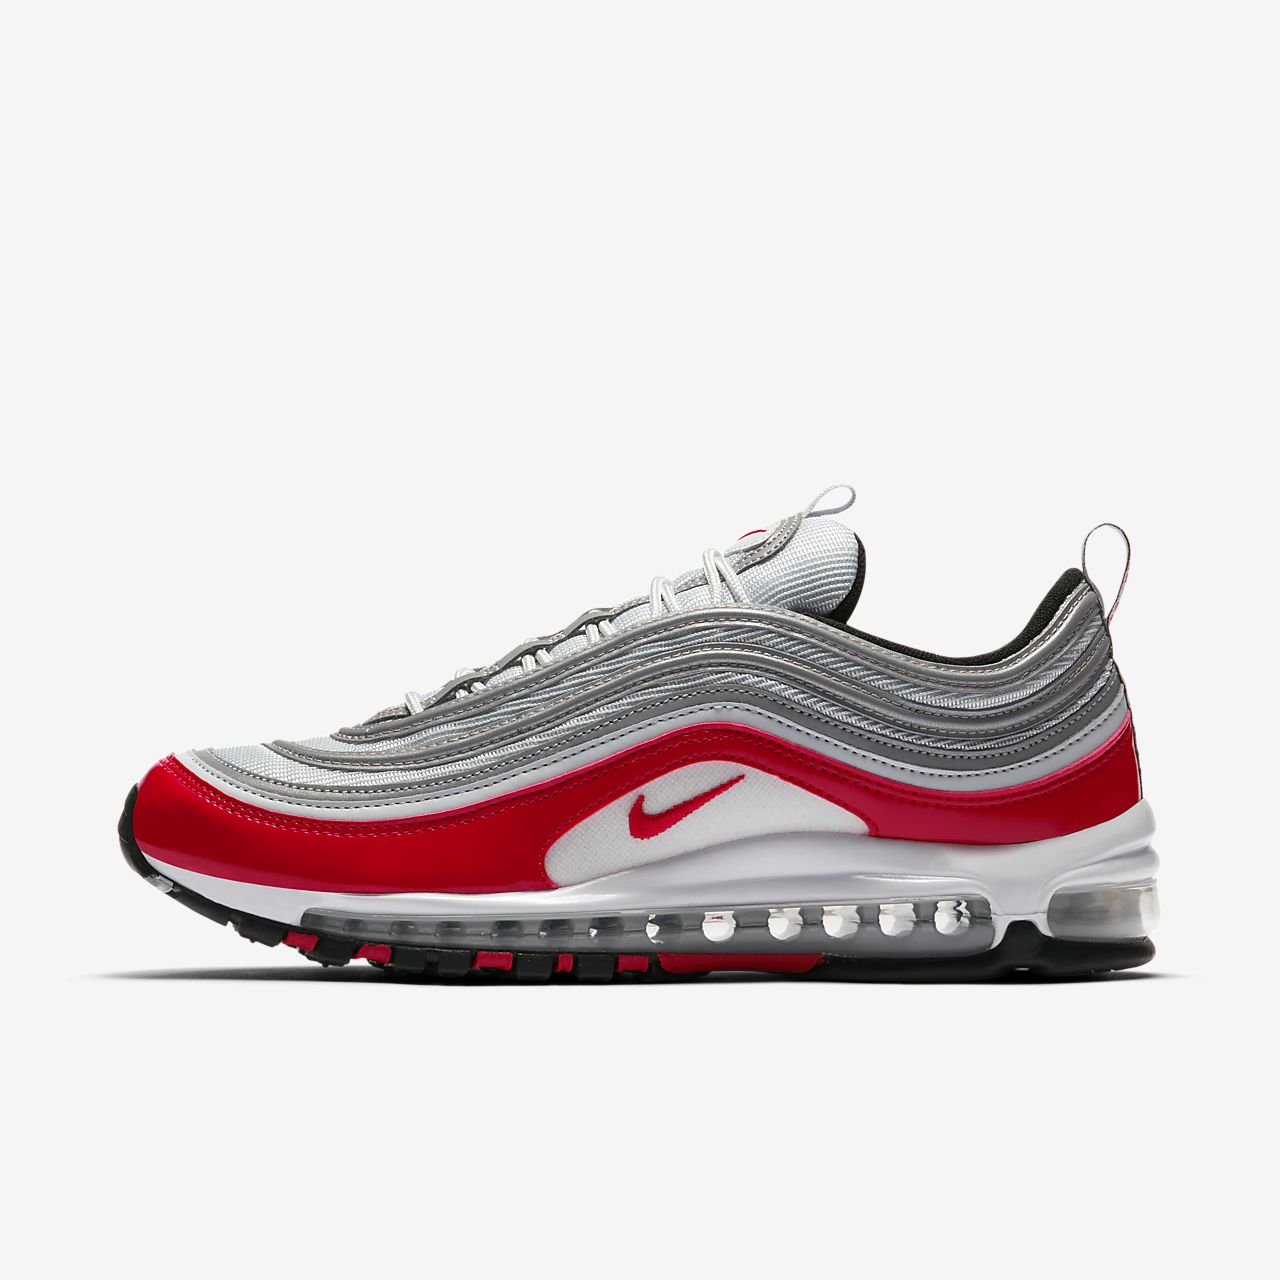 ... Nike Air Max 97 Men's Shoe